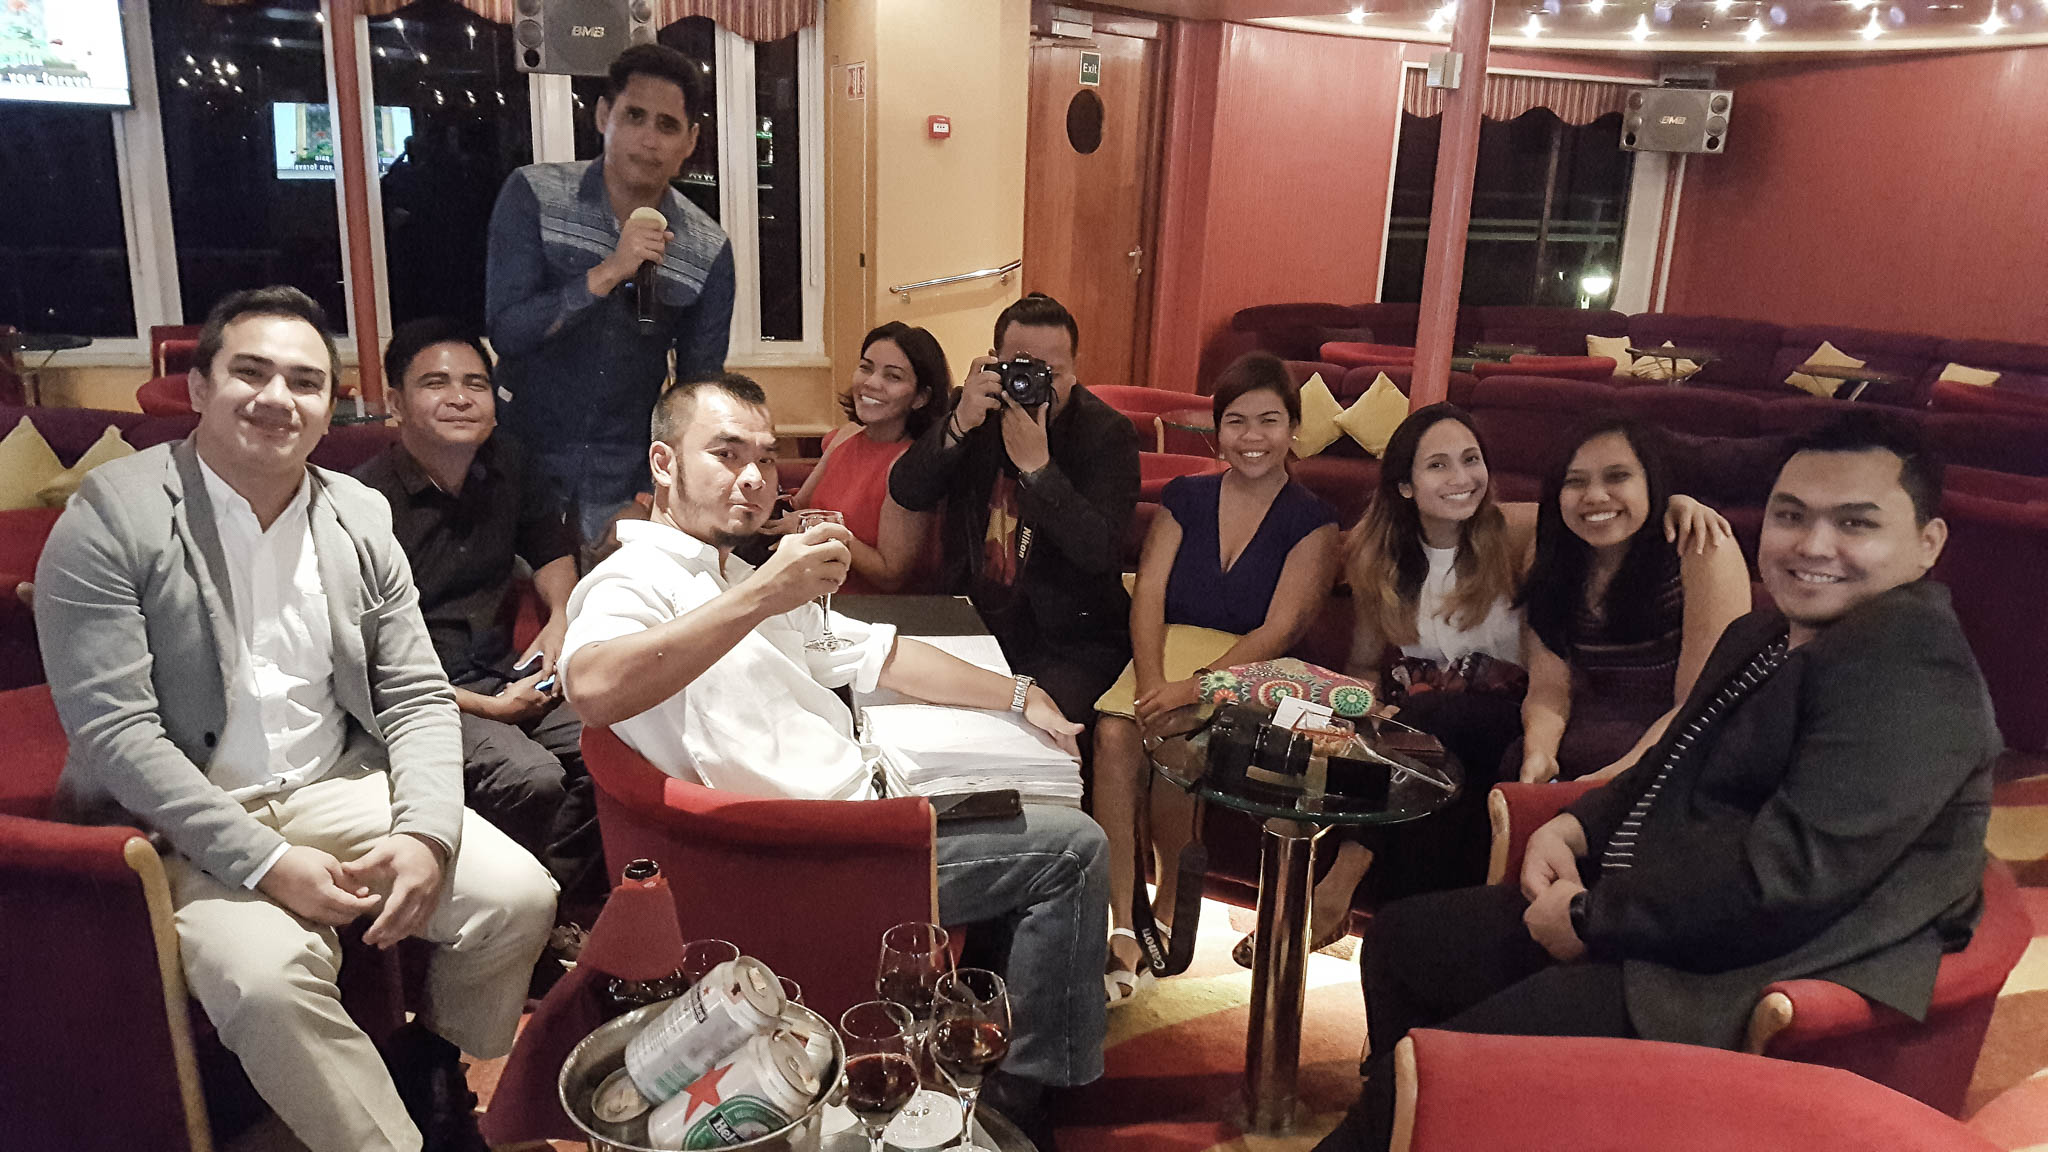 Starcruises videoke session new (1 of 1)